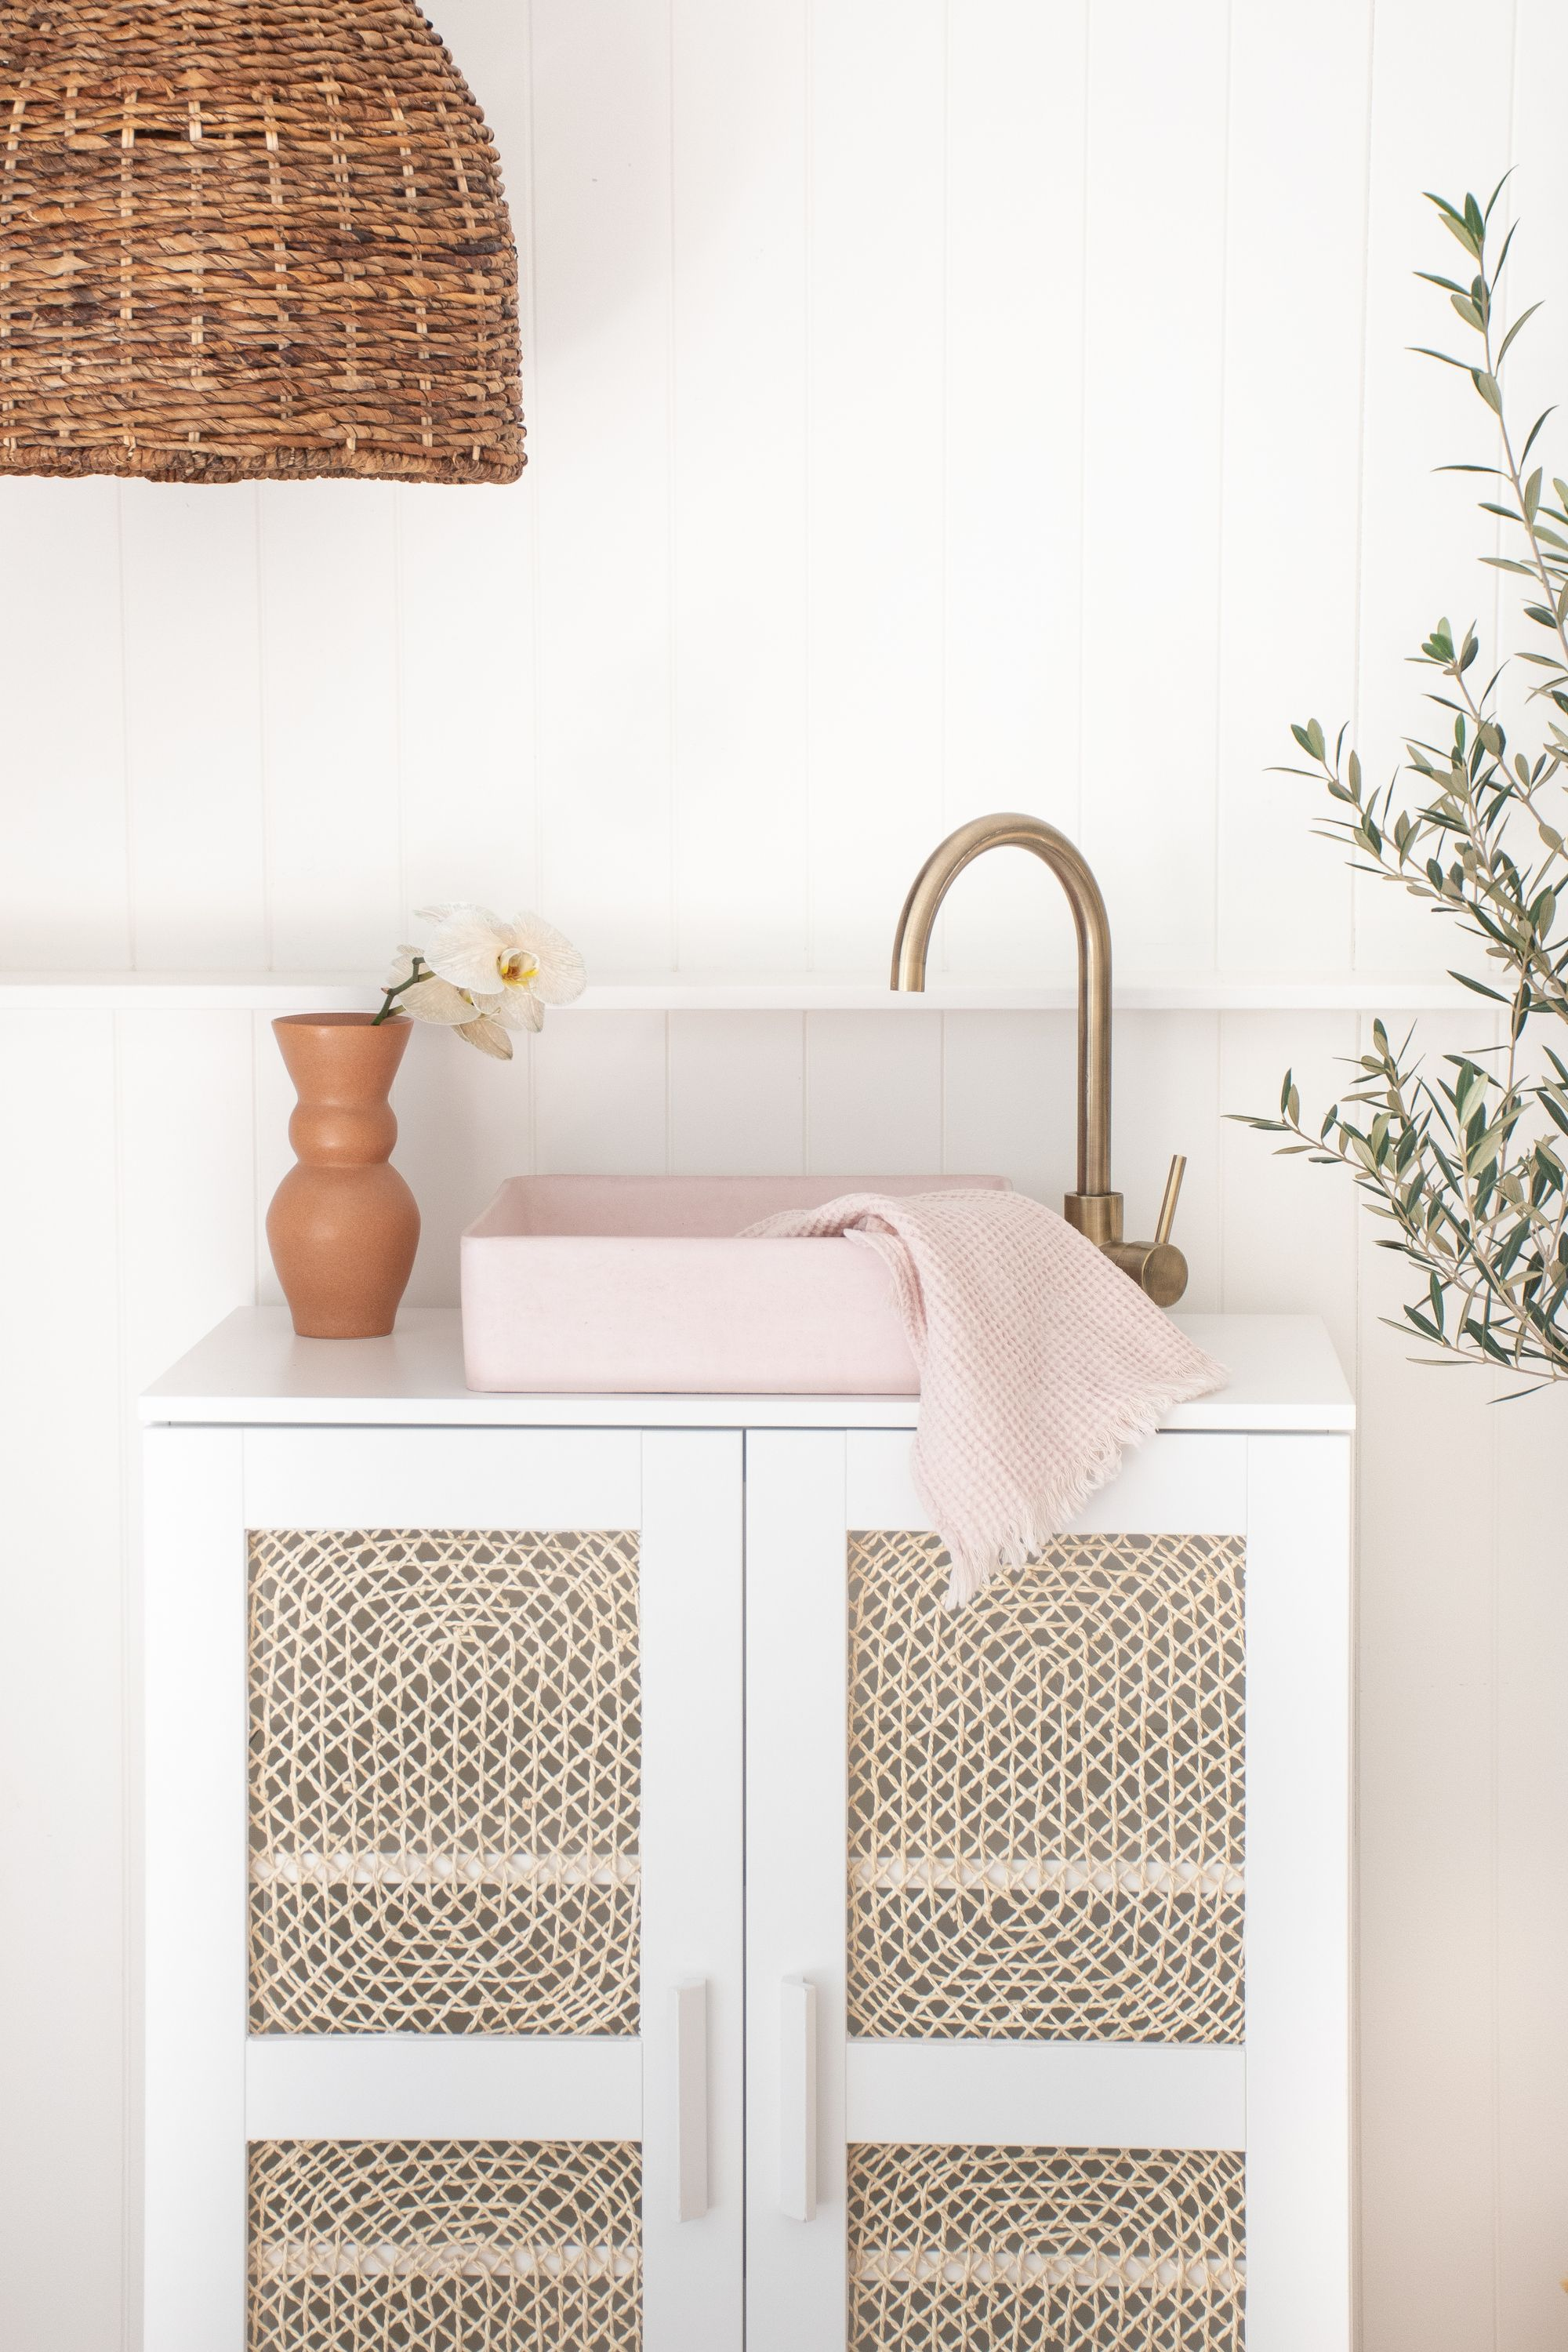 Linen Cotton Waffle Bath Towels | I Love Linen | Free delivery in Australia over $75